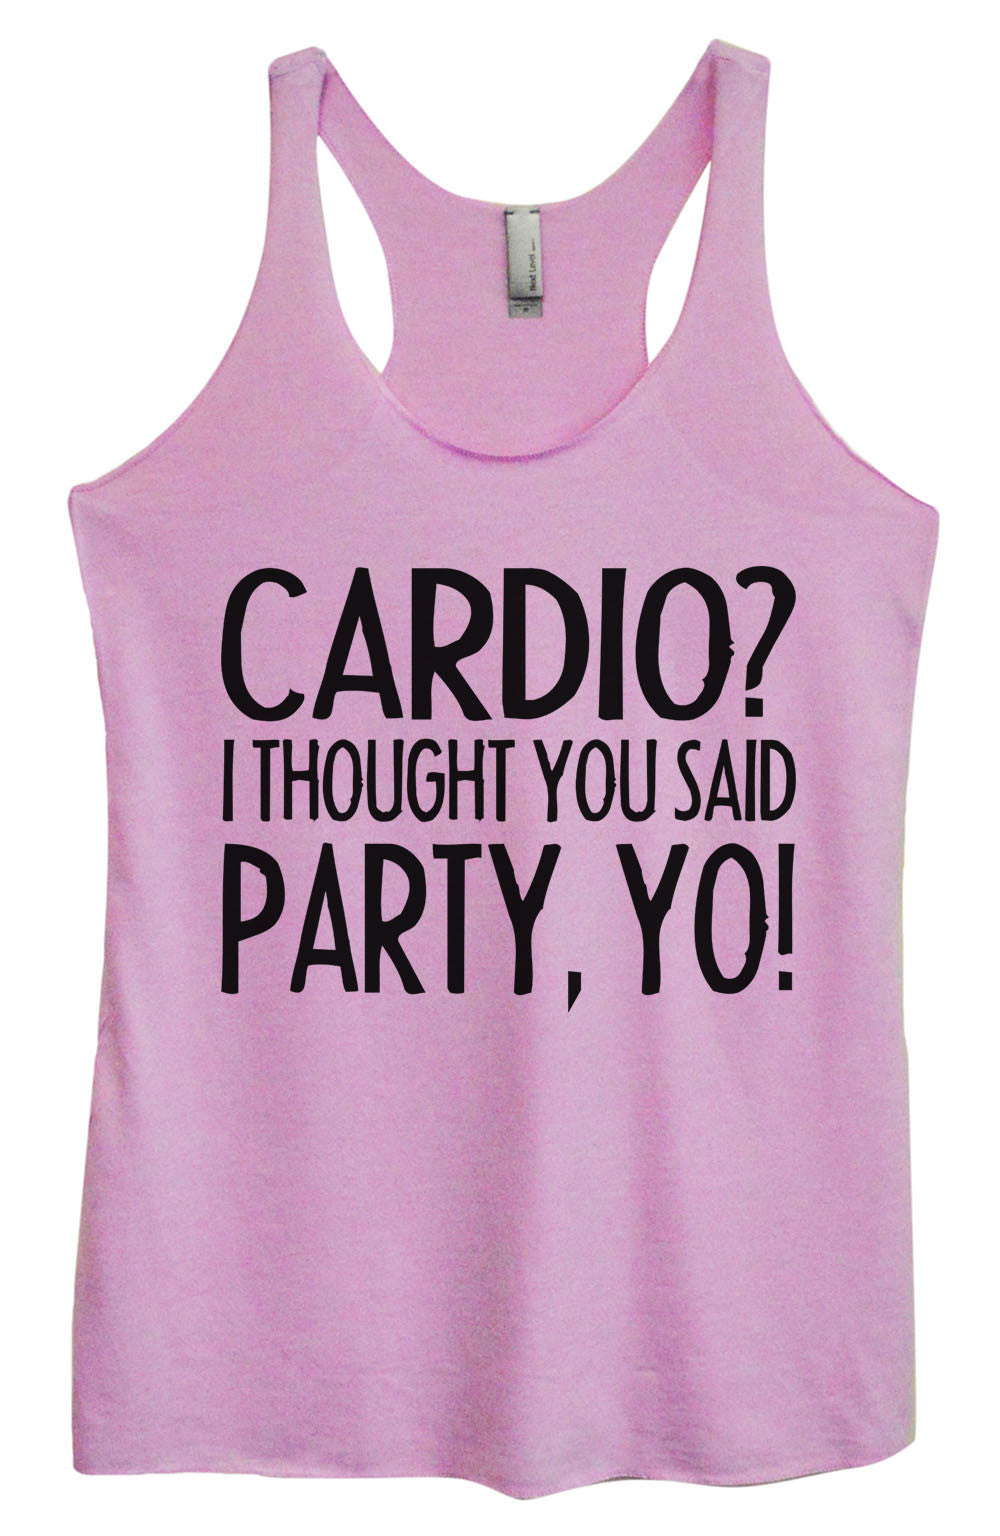 Womens Fashion Triblend Tank Top - Cardio? I Thought You Said Party, Yo! - Tri-932 - Funny Shirts Tank Tops Burnouts and Triblends  - 4